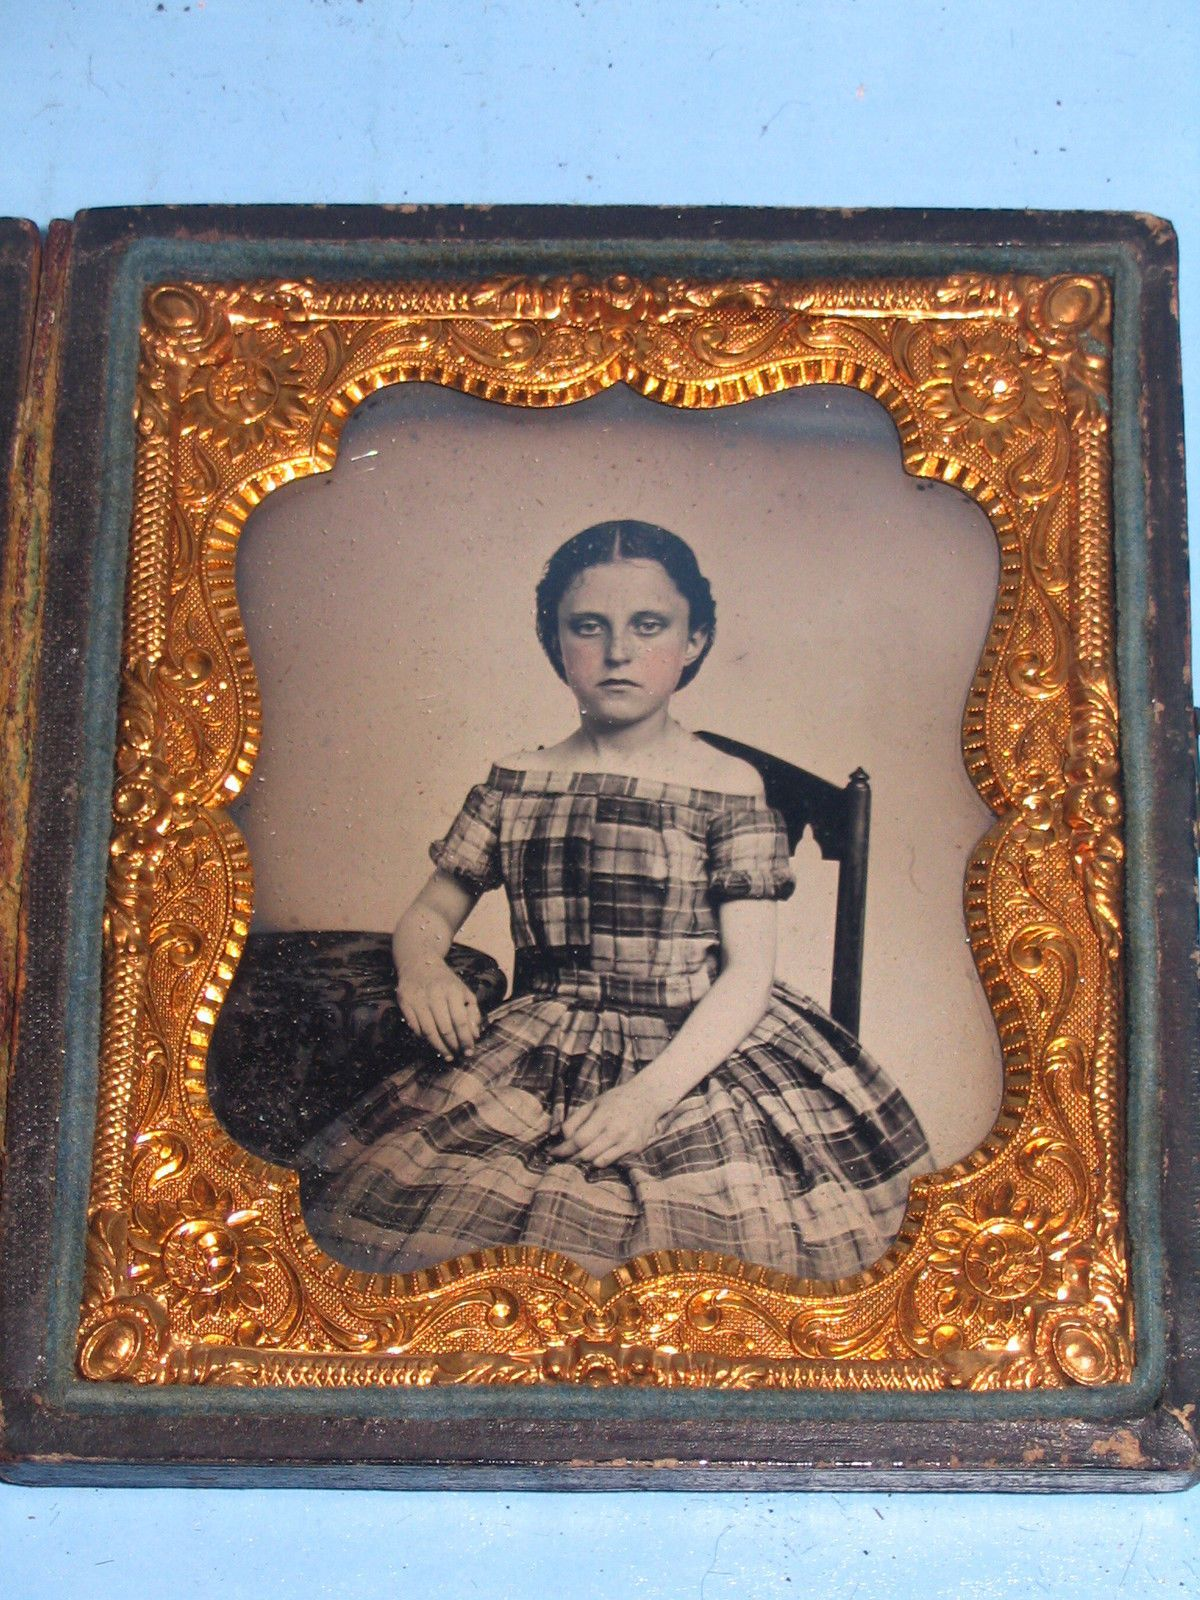 Daguerreotype or Possibly Ambrotype Pretty Girl w Plaid Nice Case 2 Tax Stamps | eBay